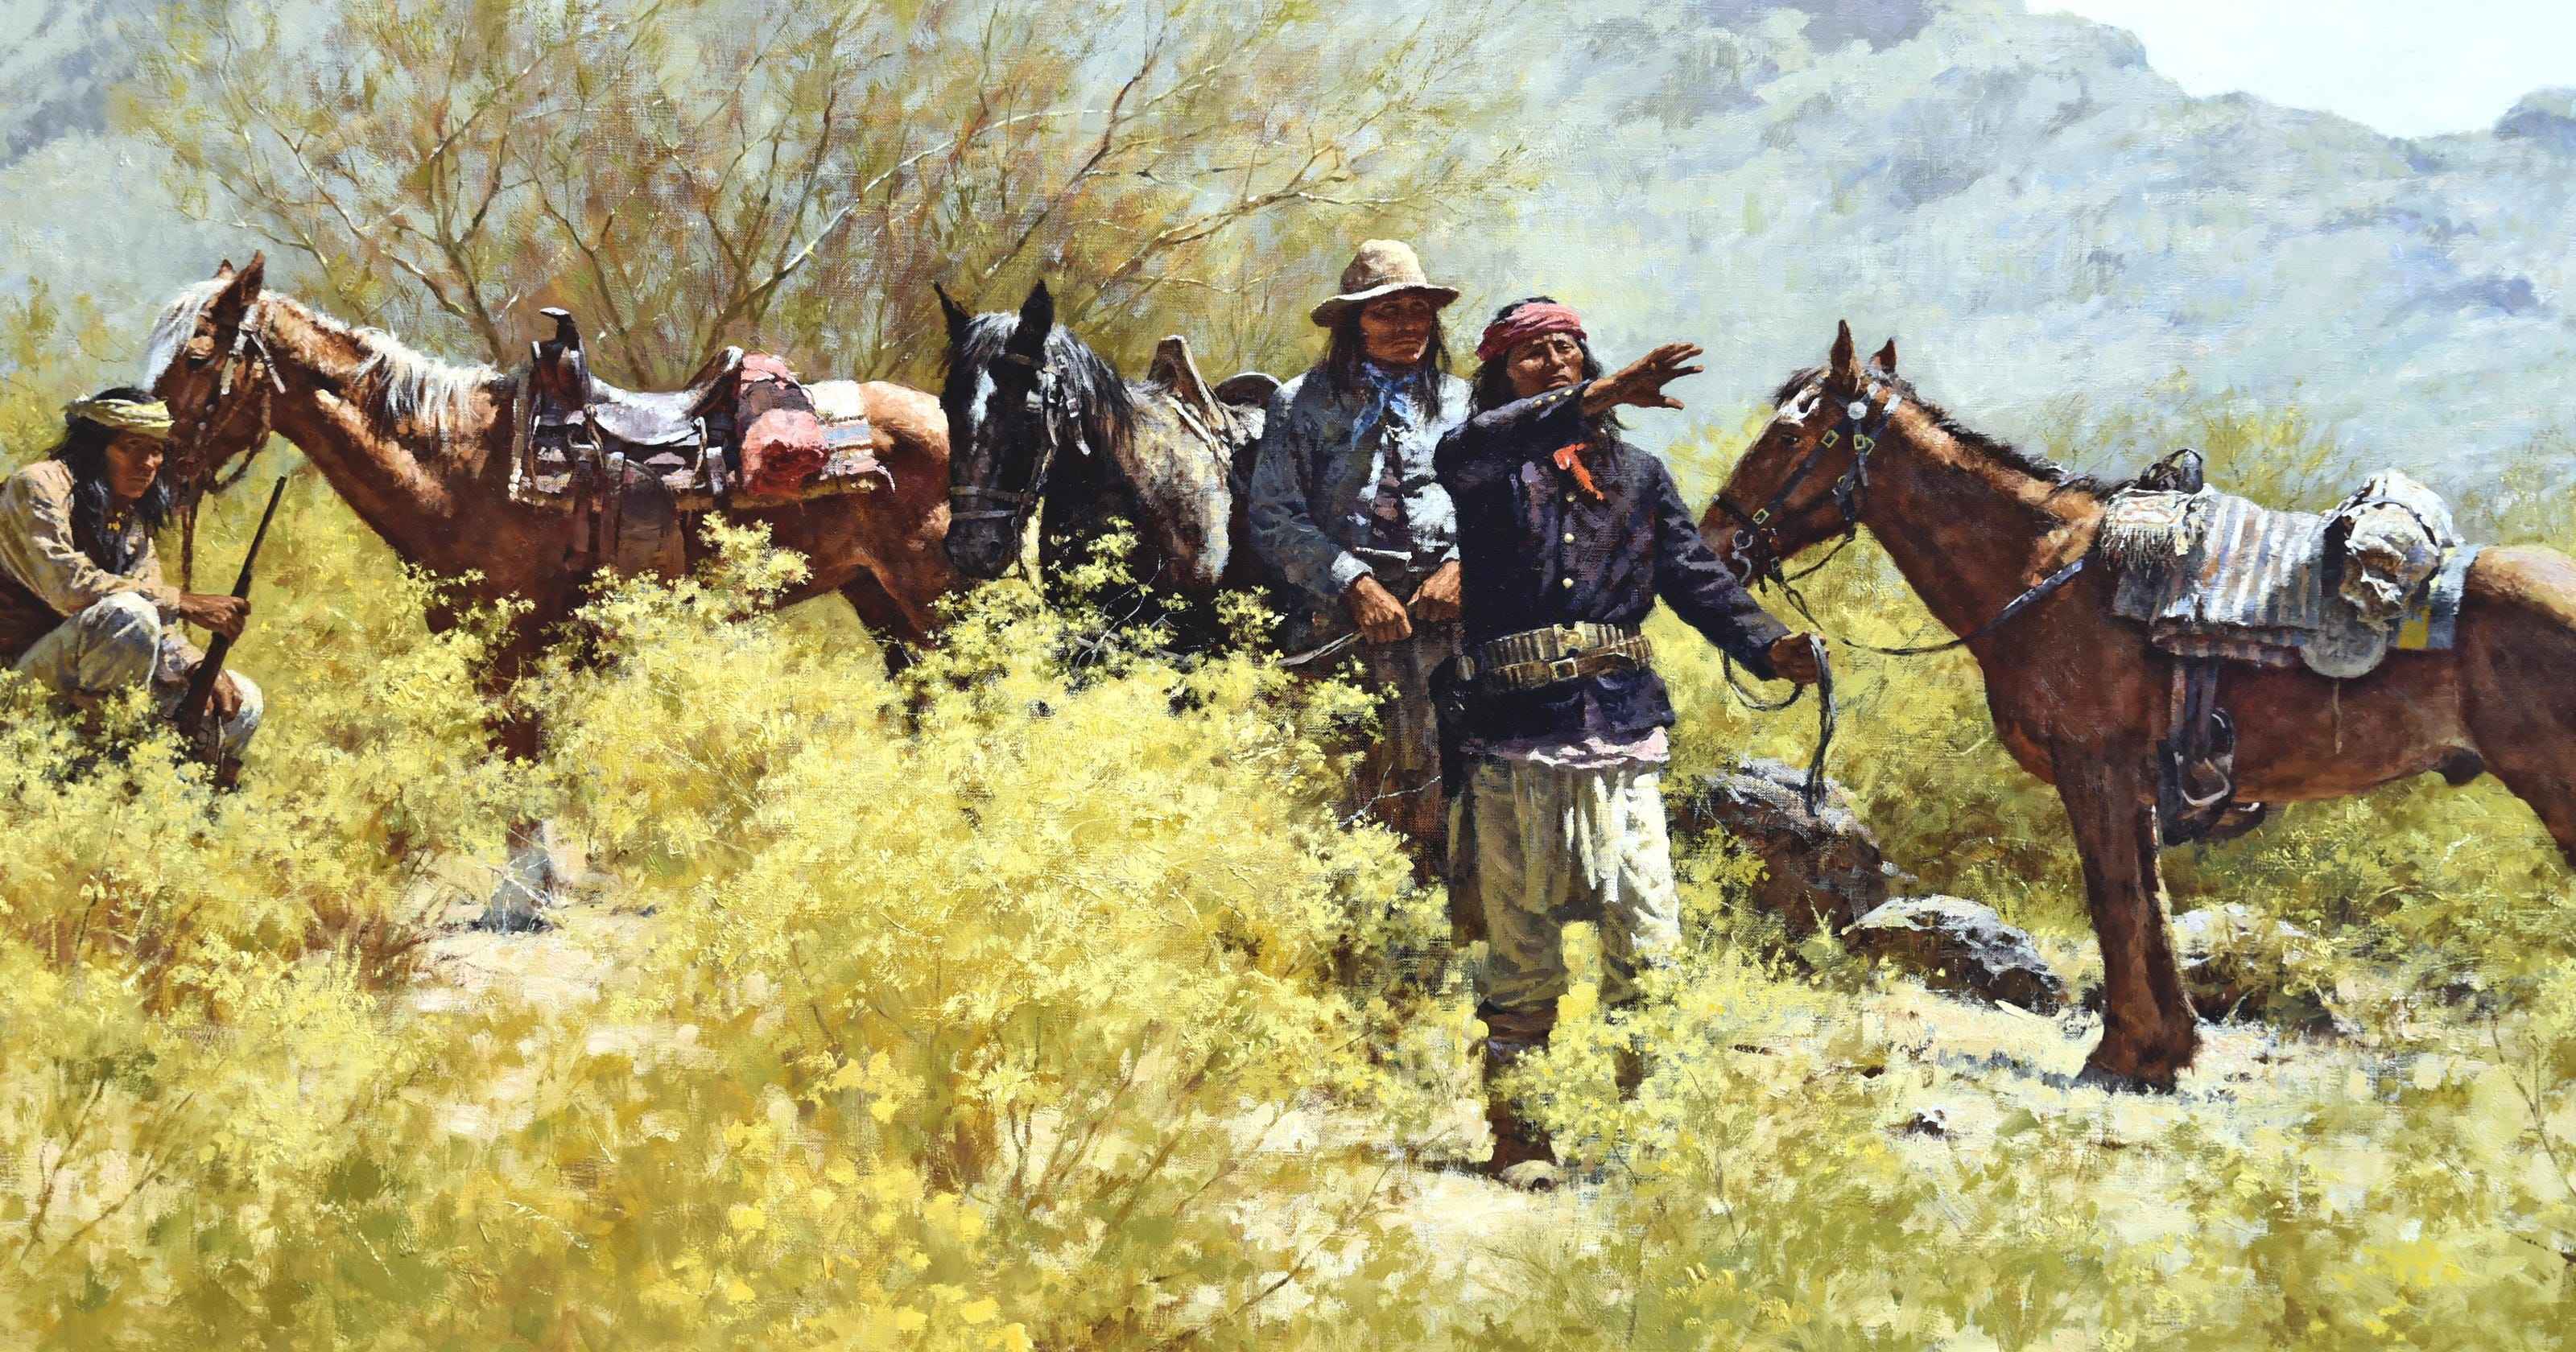 Paintings give insight to Native American culture